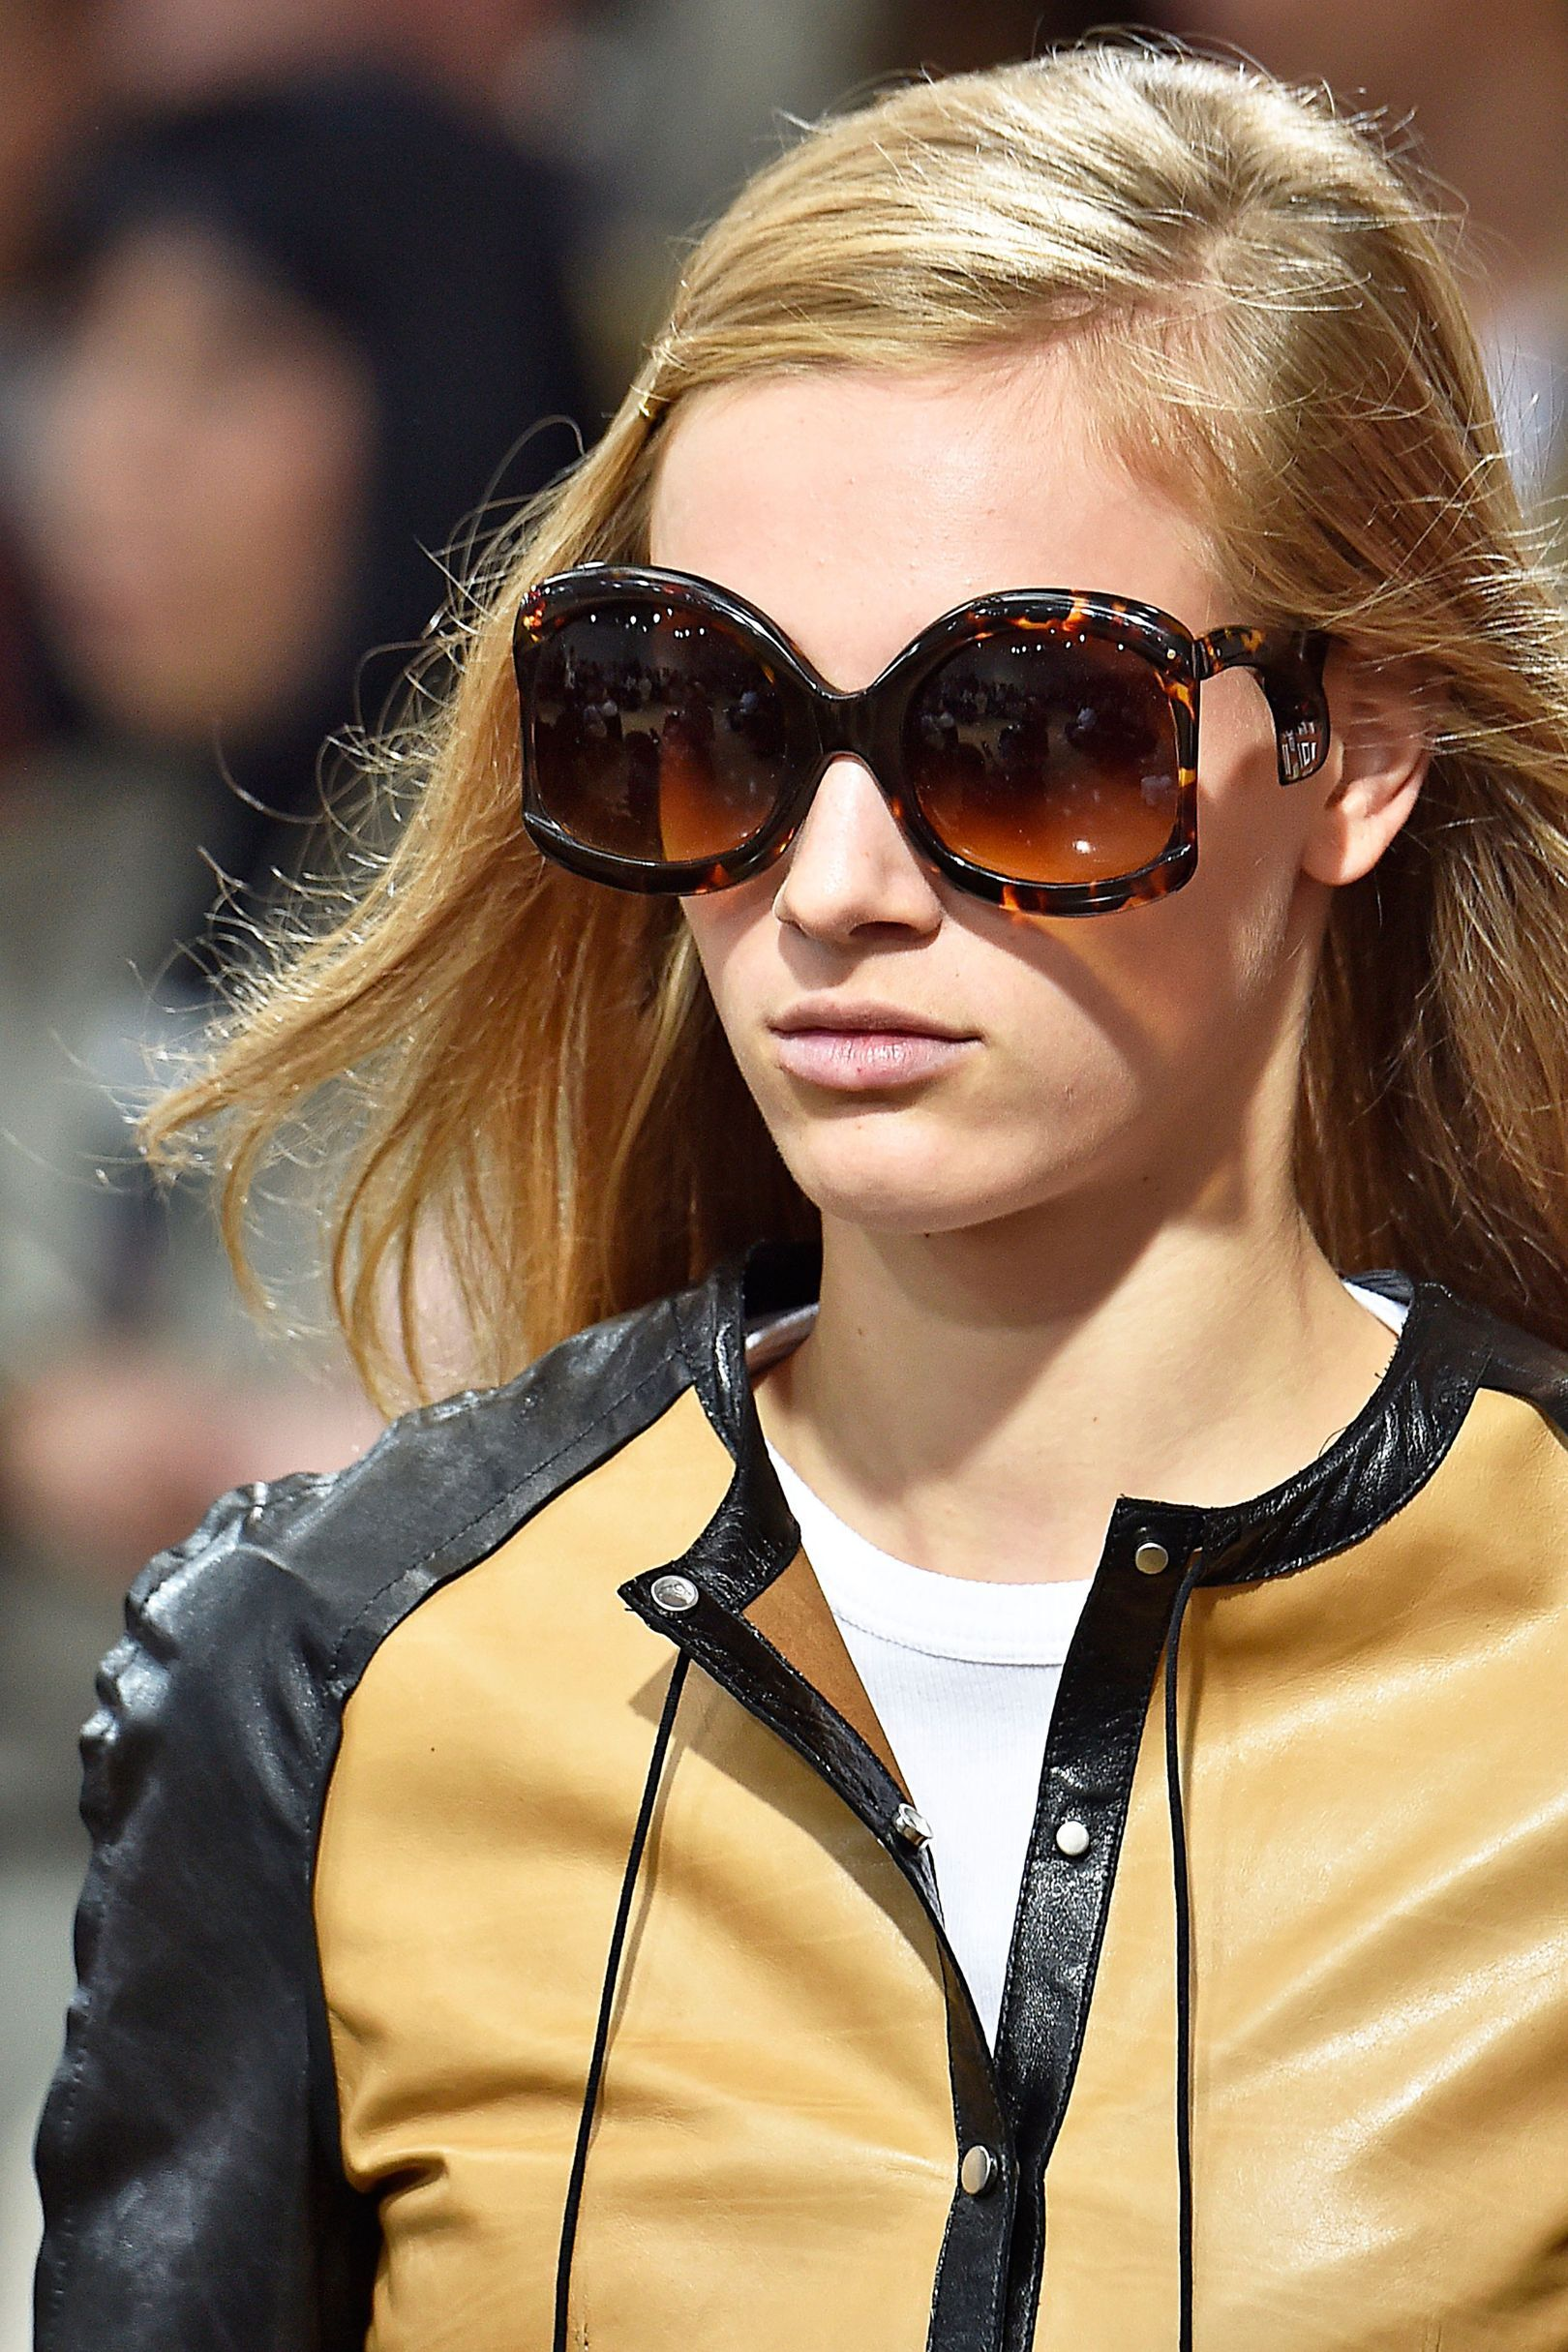 185ed3bb3 Vogue's Ultimate Sunglasses Guide Spring/Summer 2018 | faaashion is ...